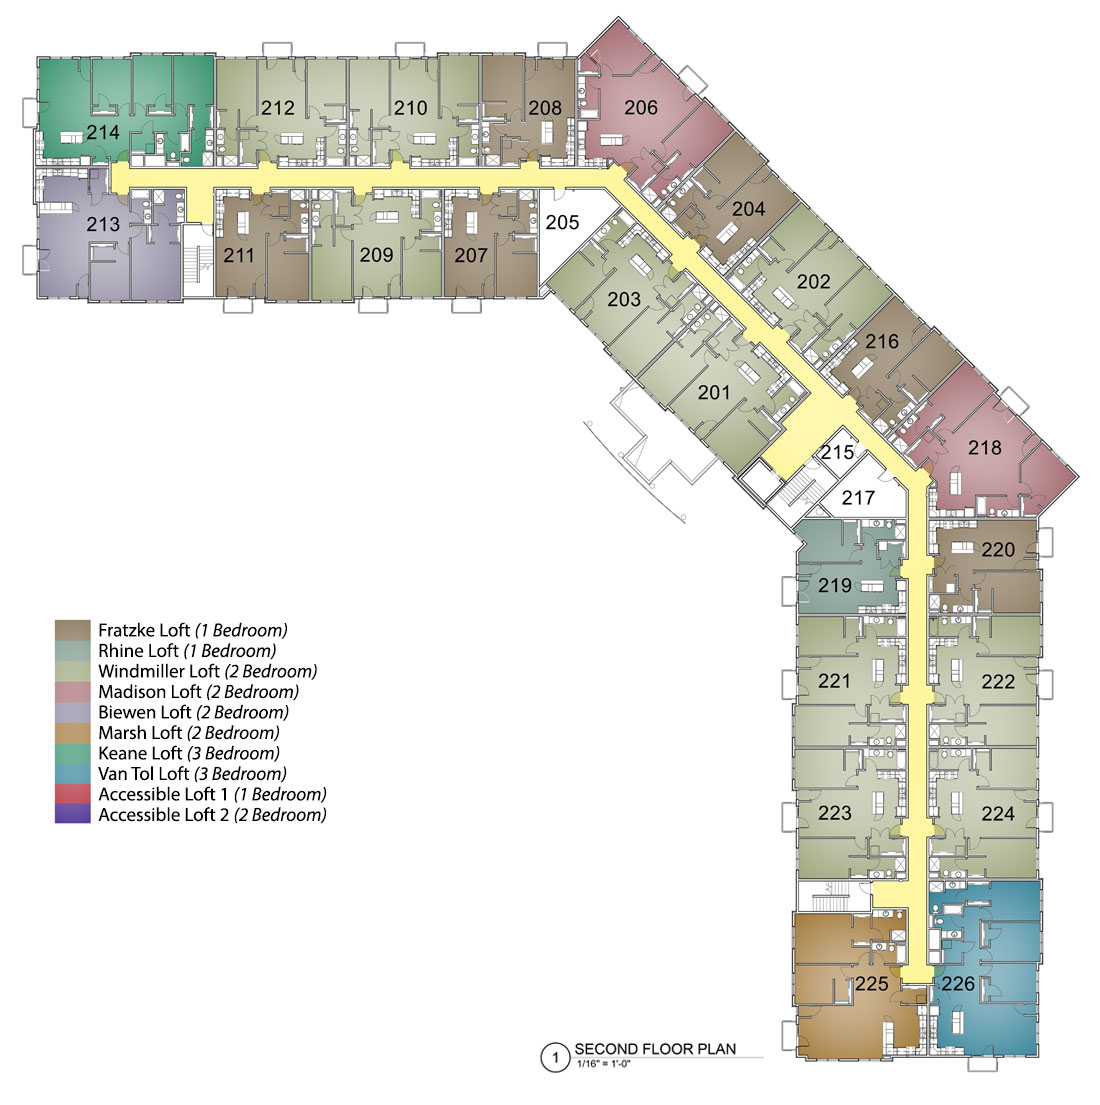 Second Floor Layout M2 Lofts - Hotspot